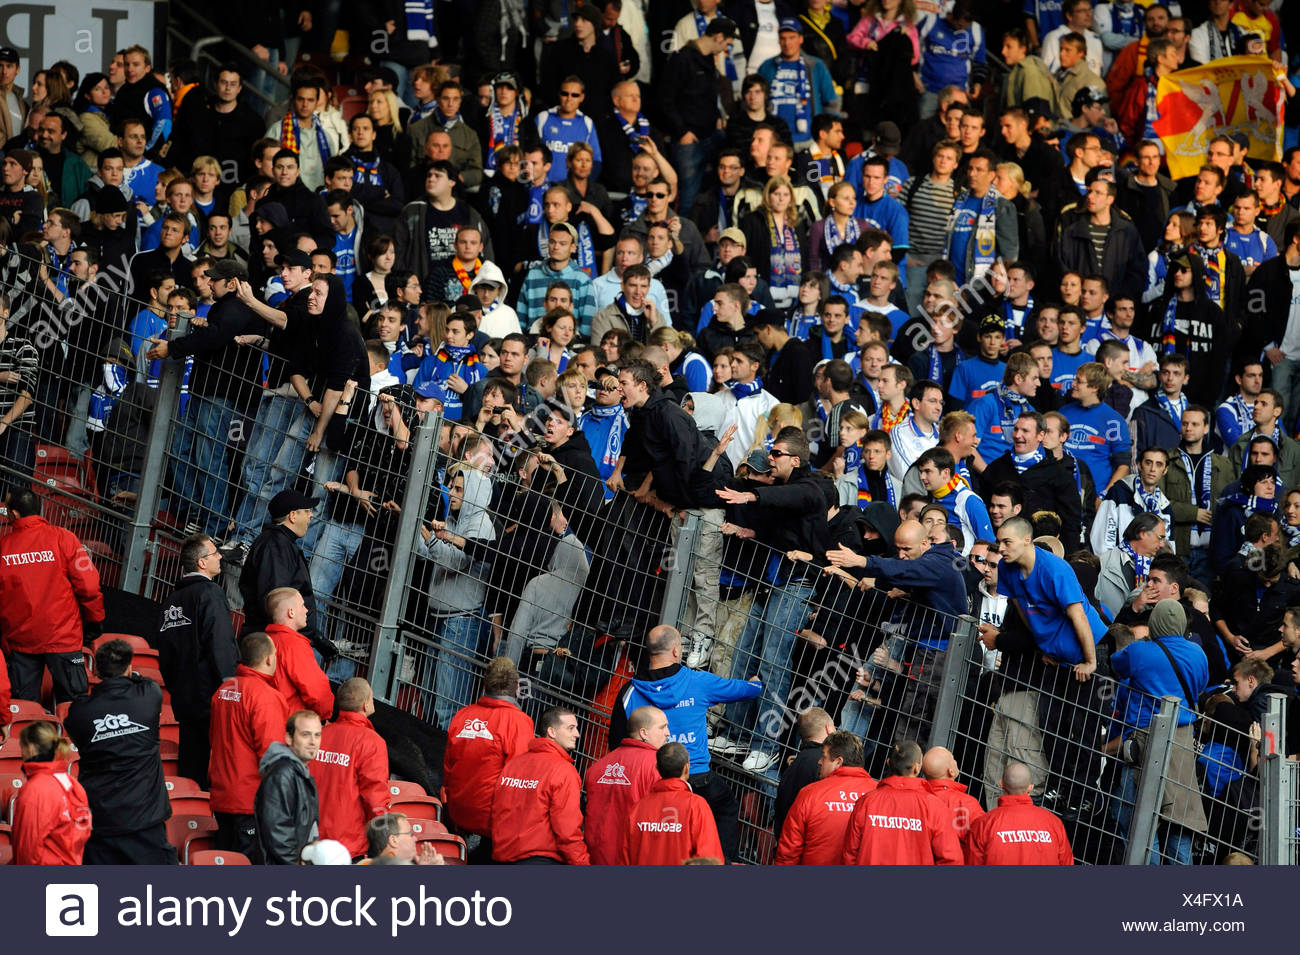 Aggressive hooligans climbing a separation fence and threatening security - Stock Image